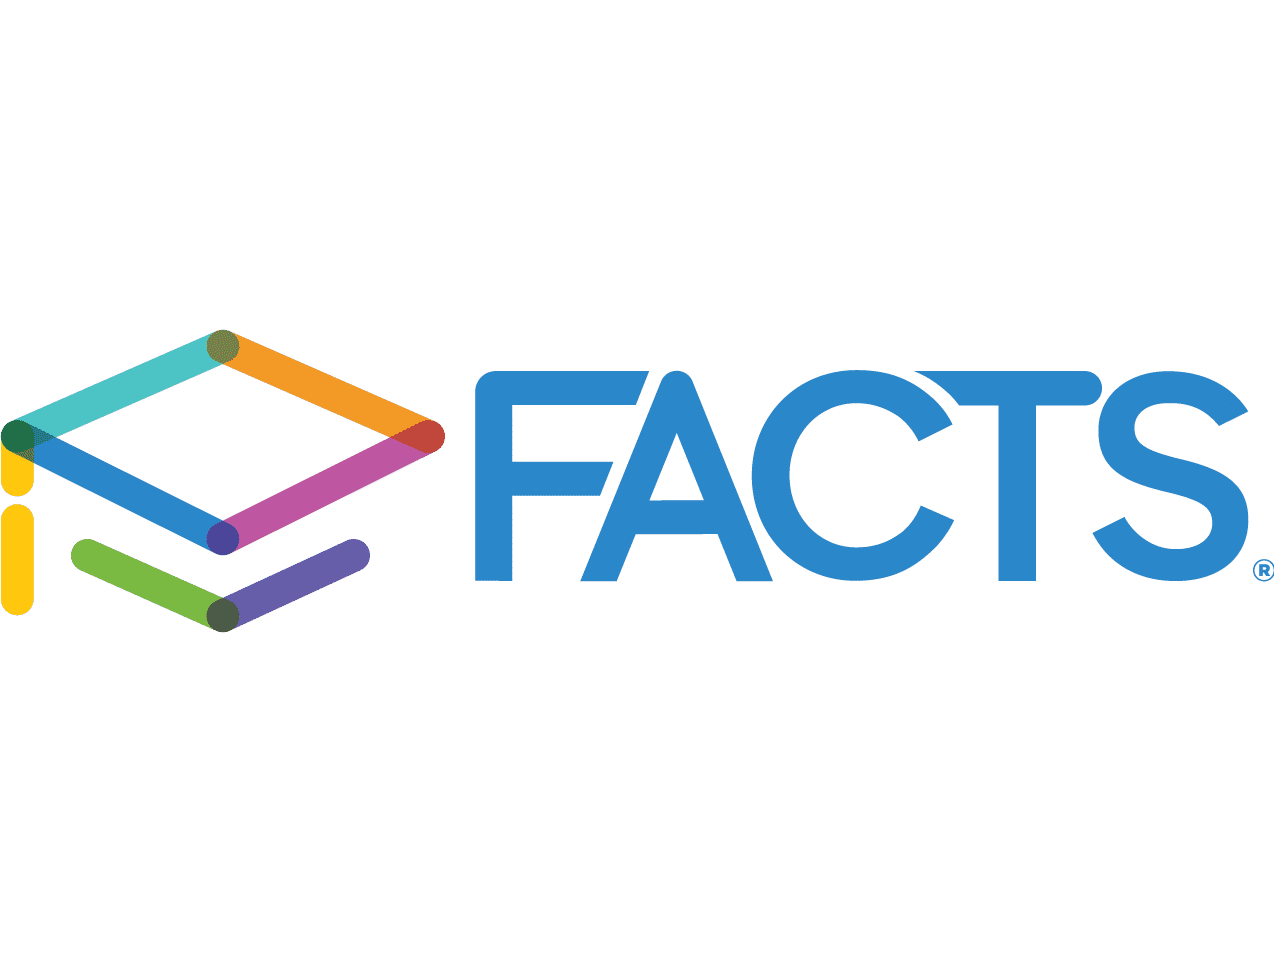 FACTS - School Management Software : SaaSworthy.com